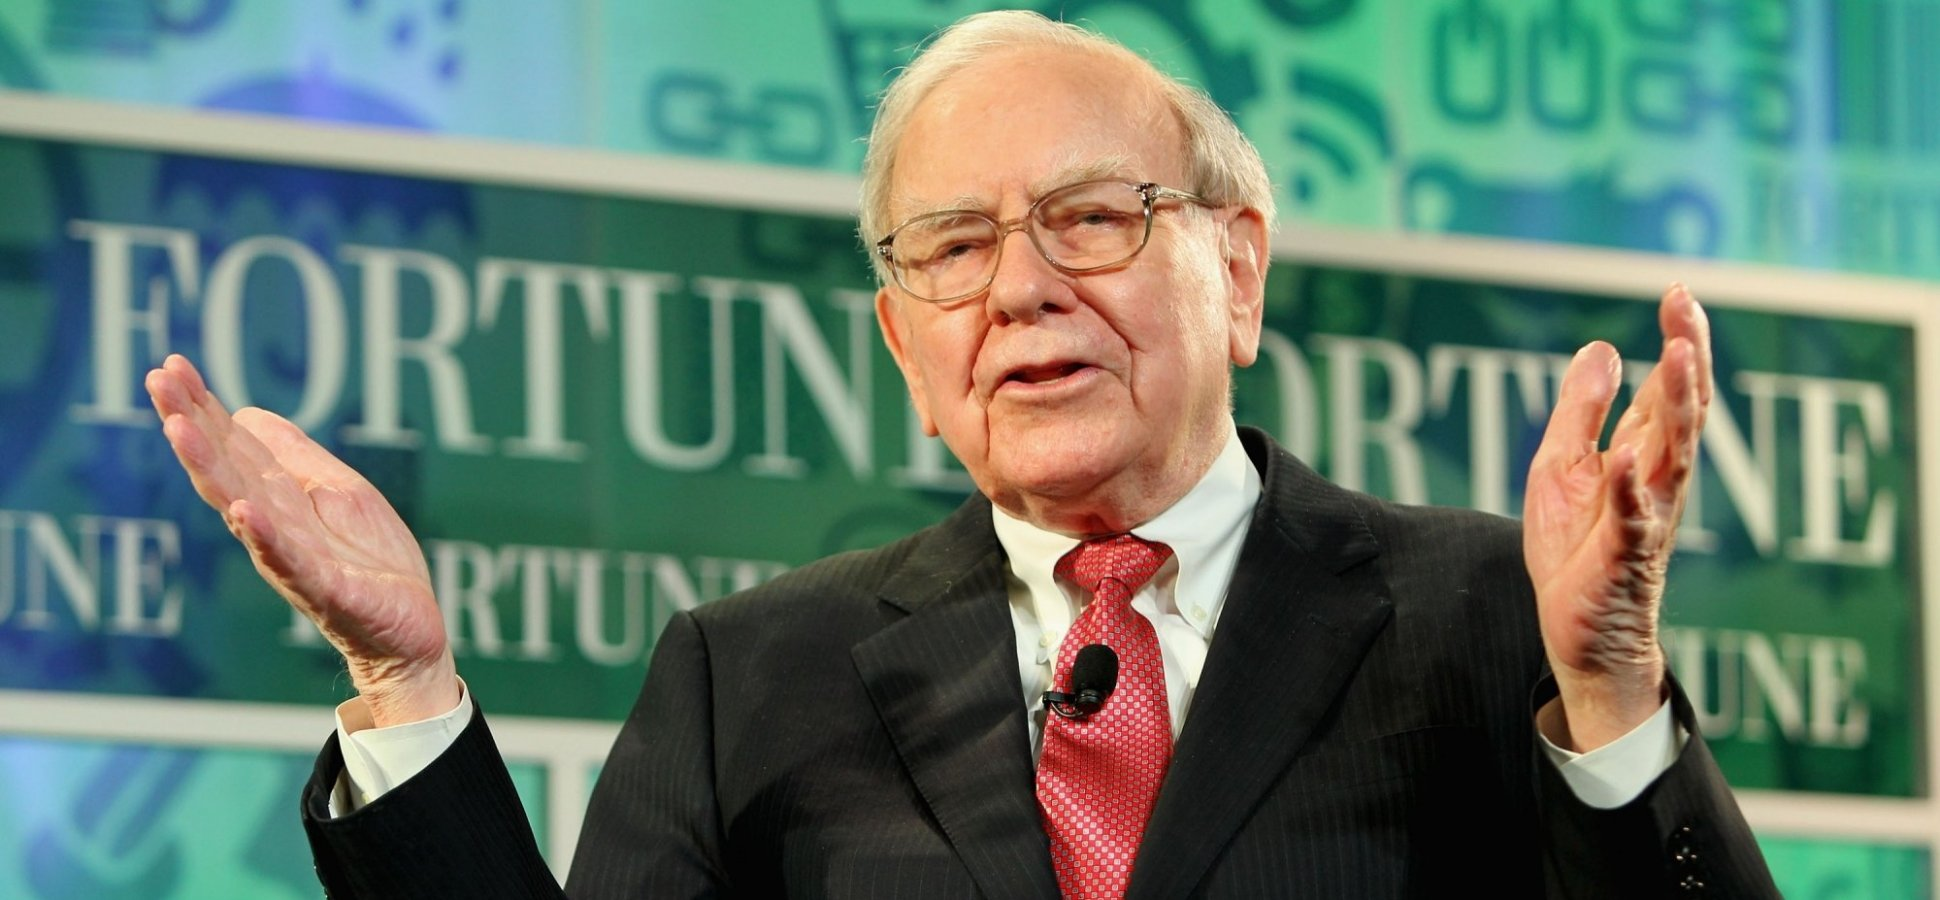 Warren Buffett Says 3 Decisions in Life Separate High Achievers From Mere Dreamers